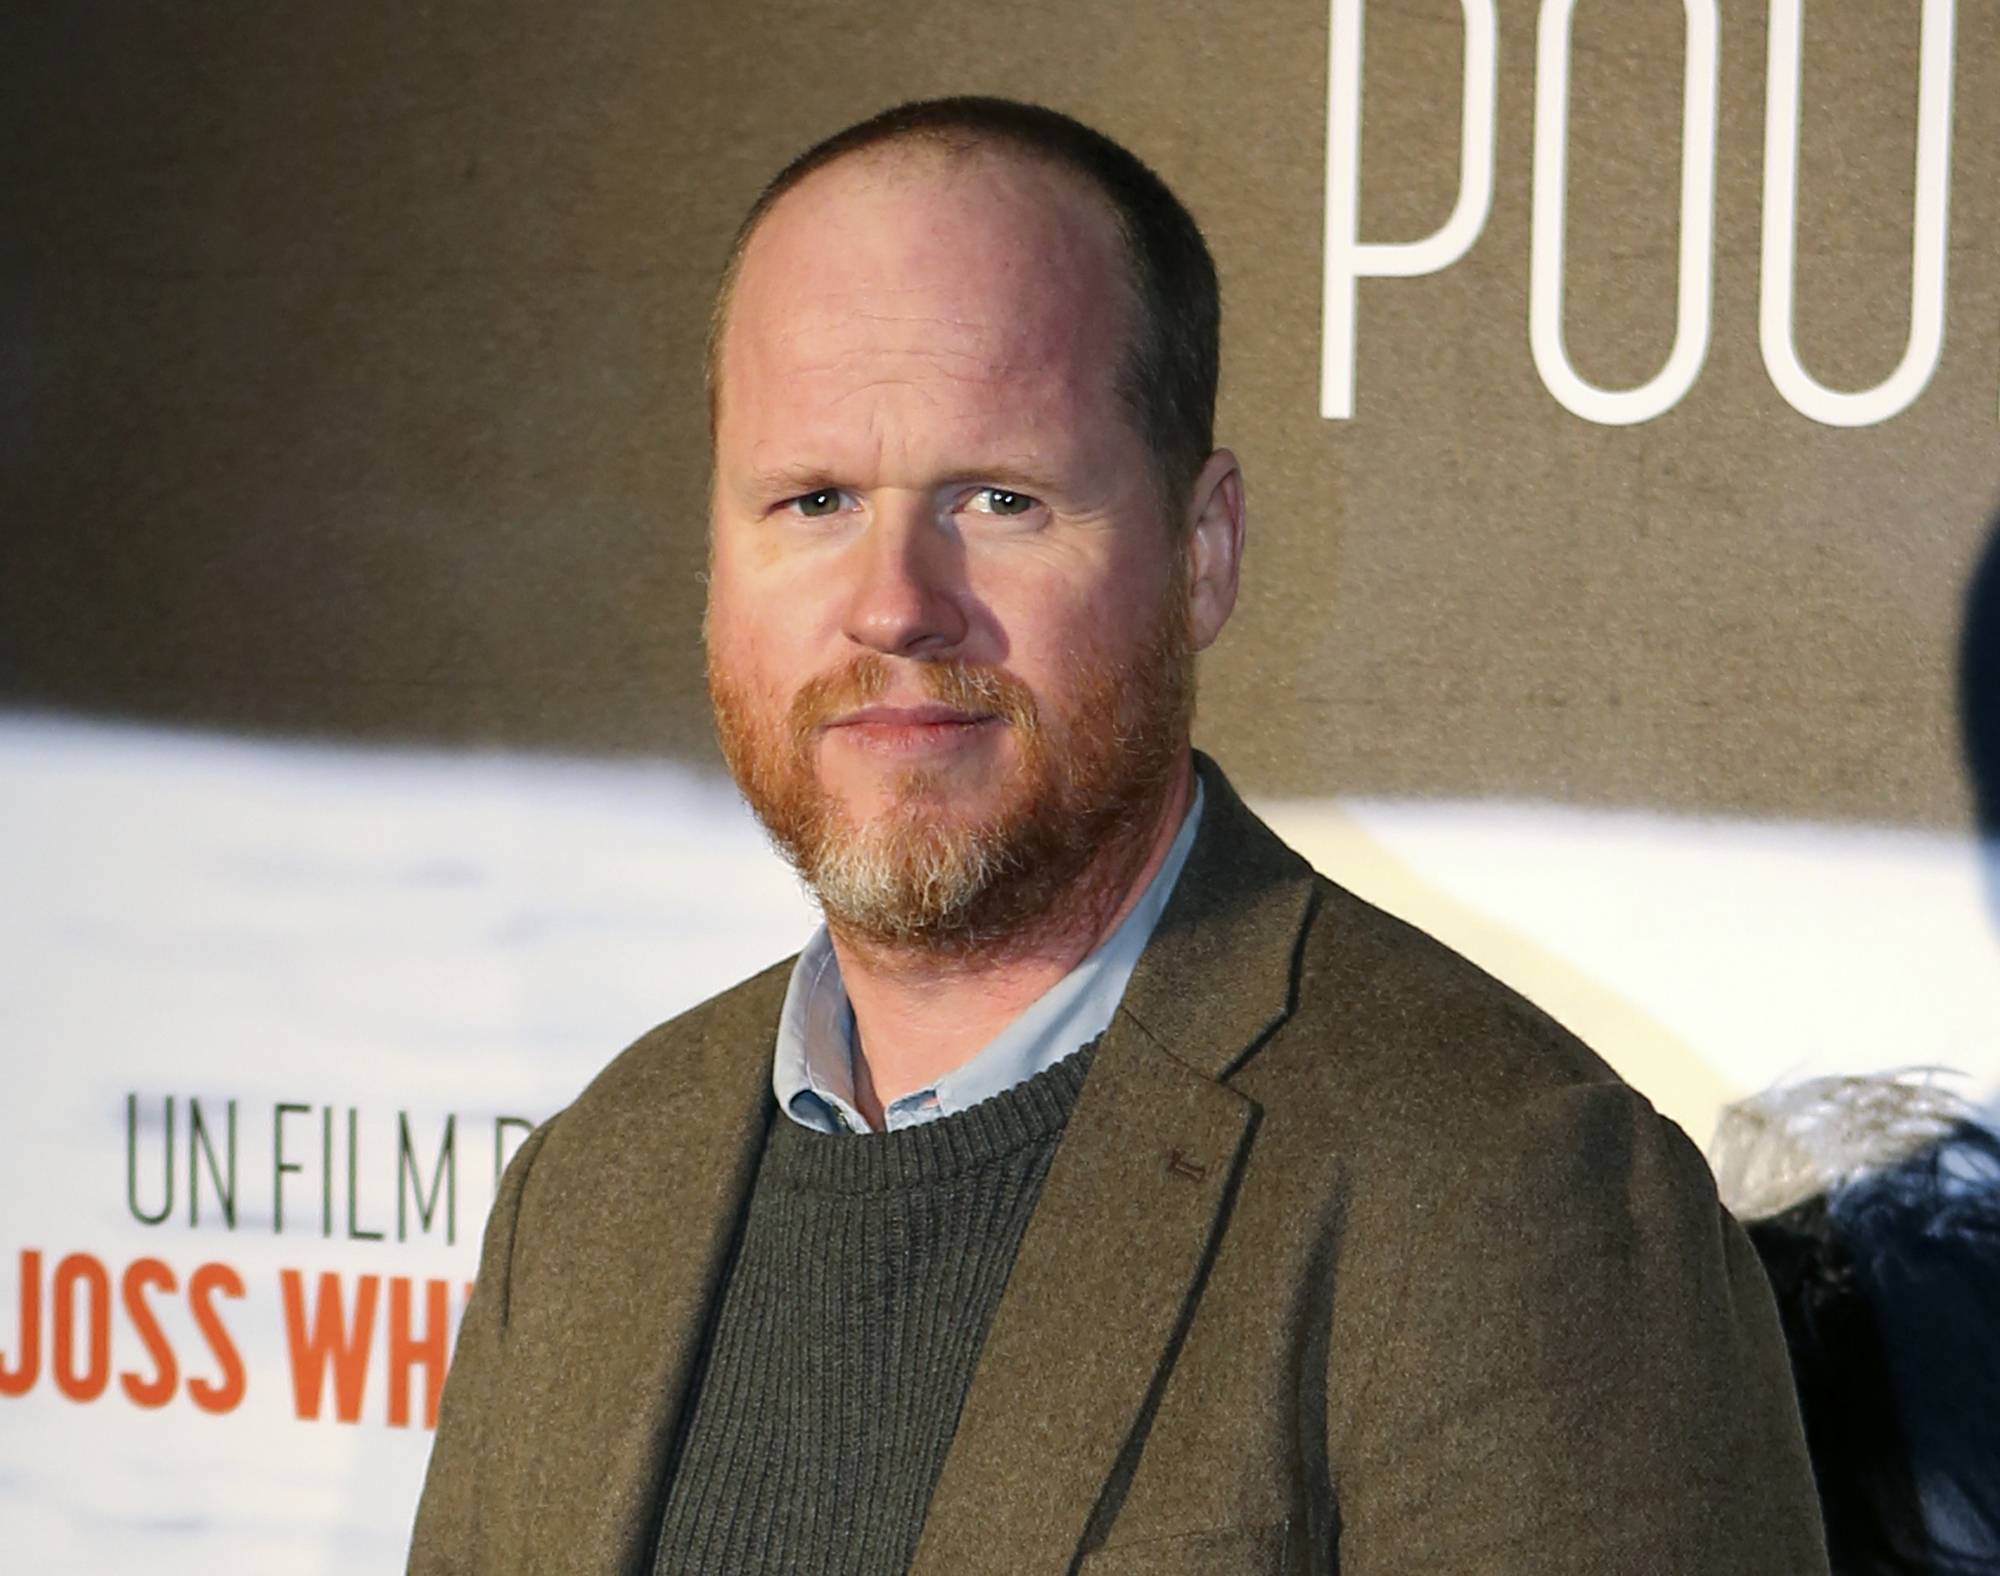 "Film producer and director Joss Whedon is releasing a film he wrote as a $5 digital download, bypassing the normal channels of independent film distribution. In a video announcement Sunday following the premiere of the supernatural romance ""In Your Eyes"" at the Tribeca Film Festival, Whedon said that the film will immediately be released online worldwide via Vimeo On Demand."